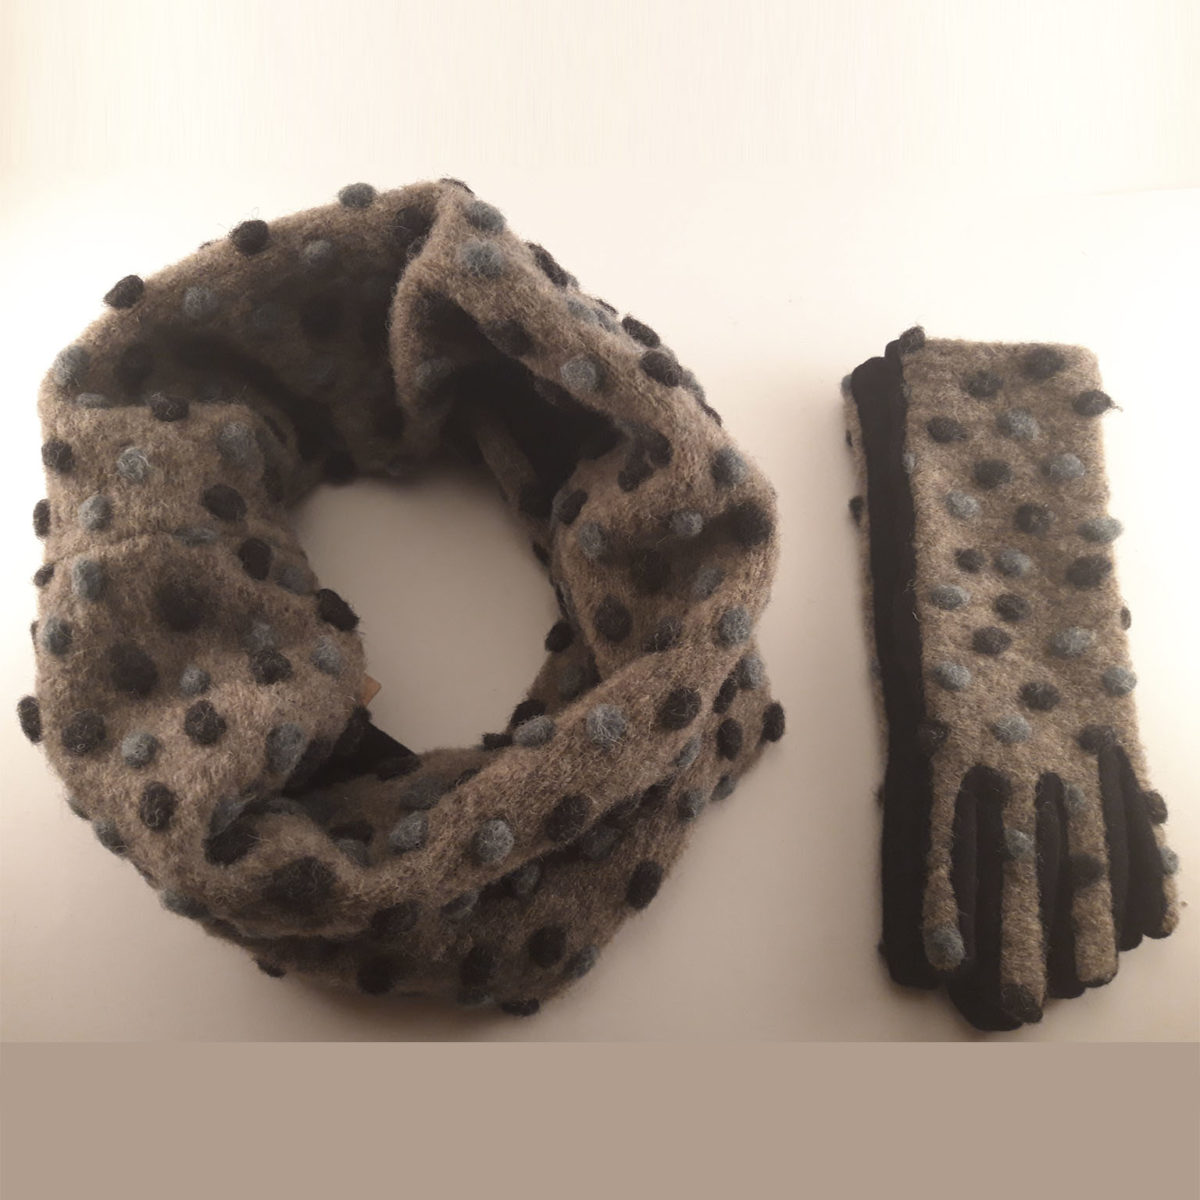 Tauper Collar And Gloves With Black And Gray Polka Dots